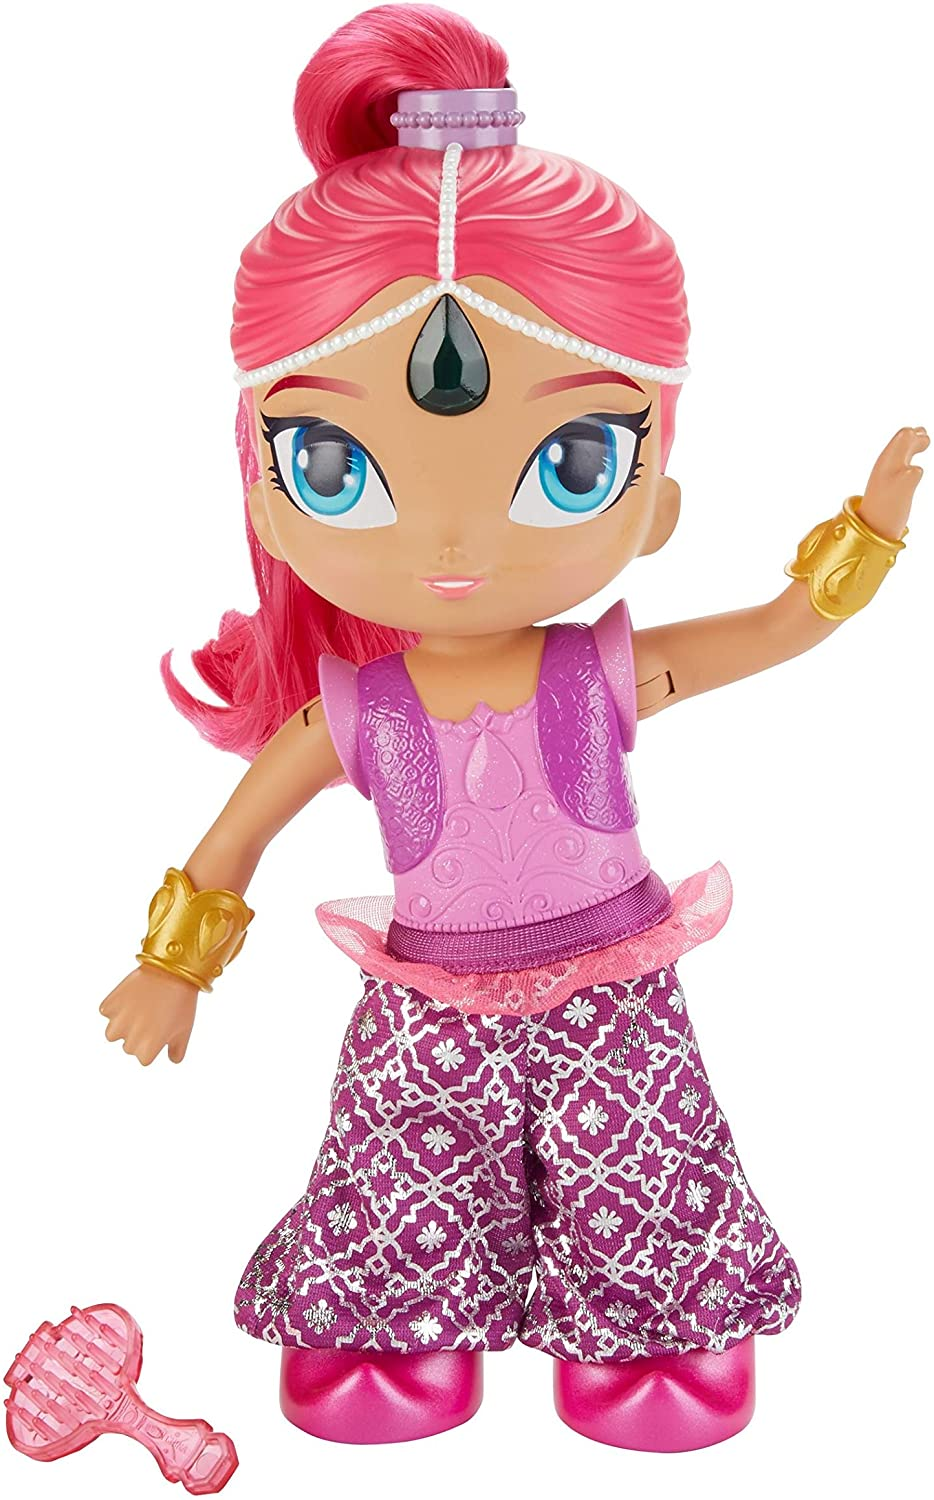 Shimmer and Shine DYV78(DYV83) Genie Dance Shimmer Doll